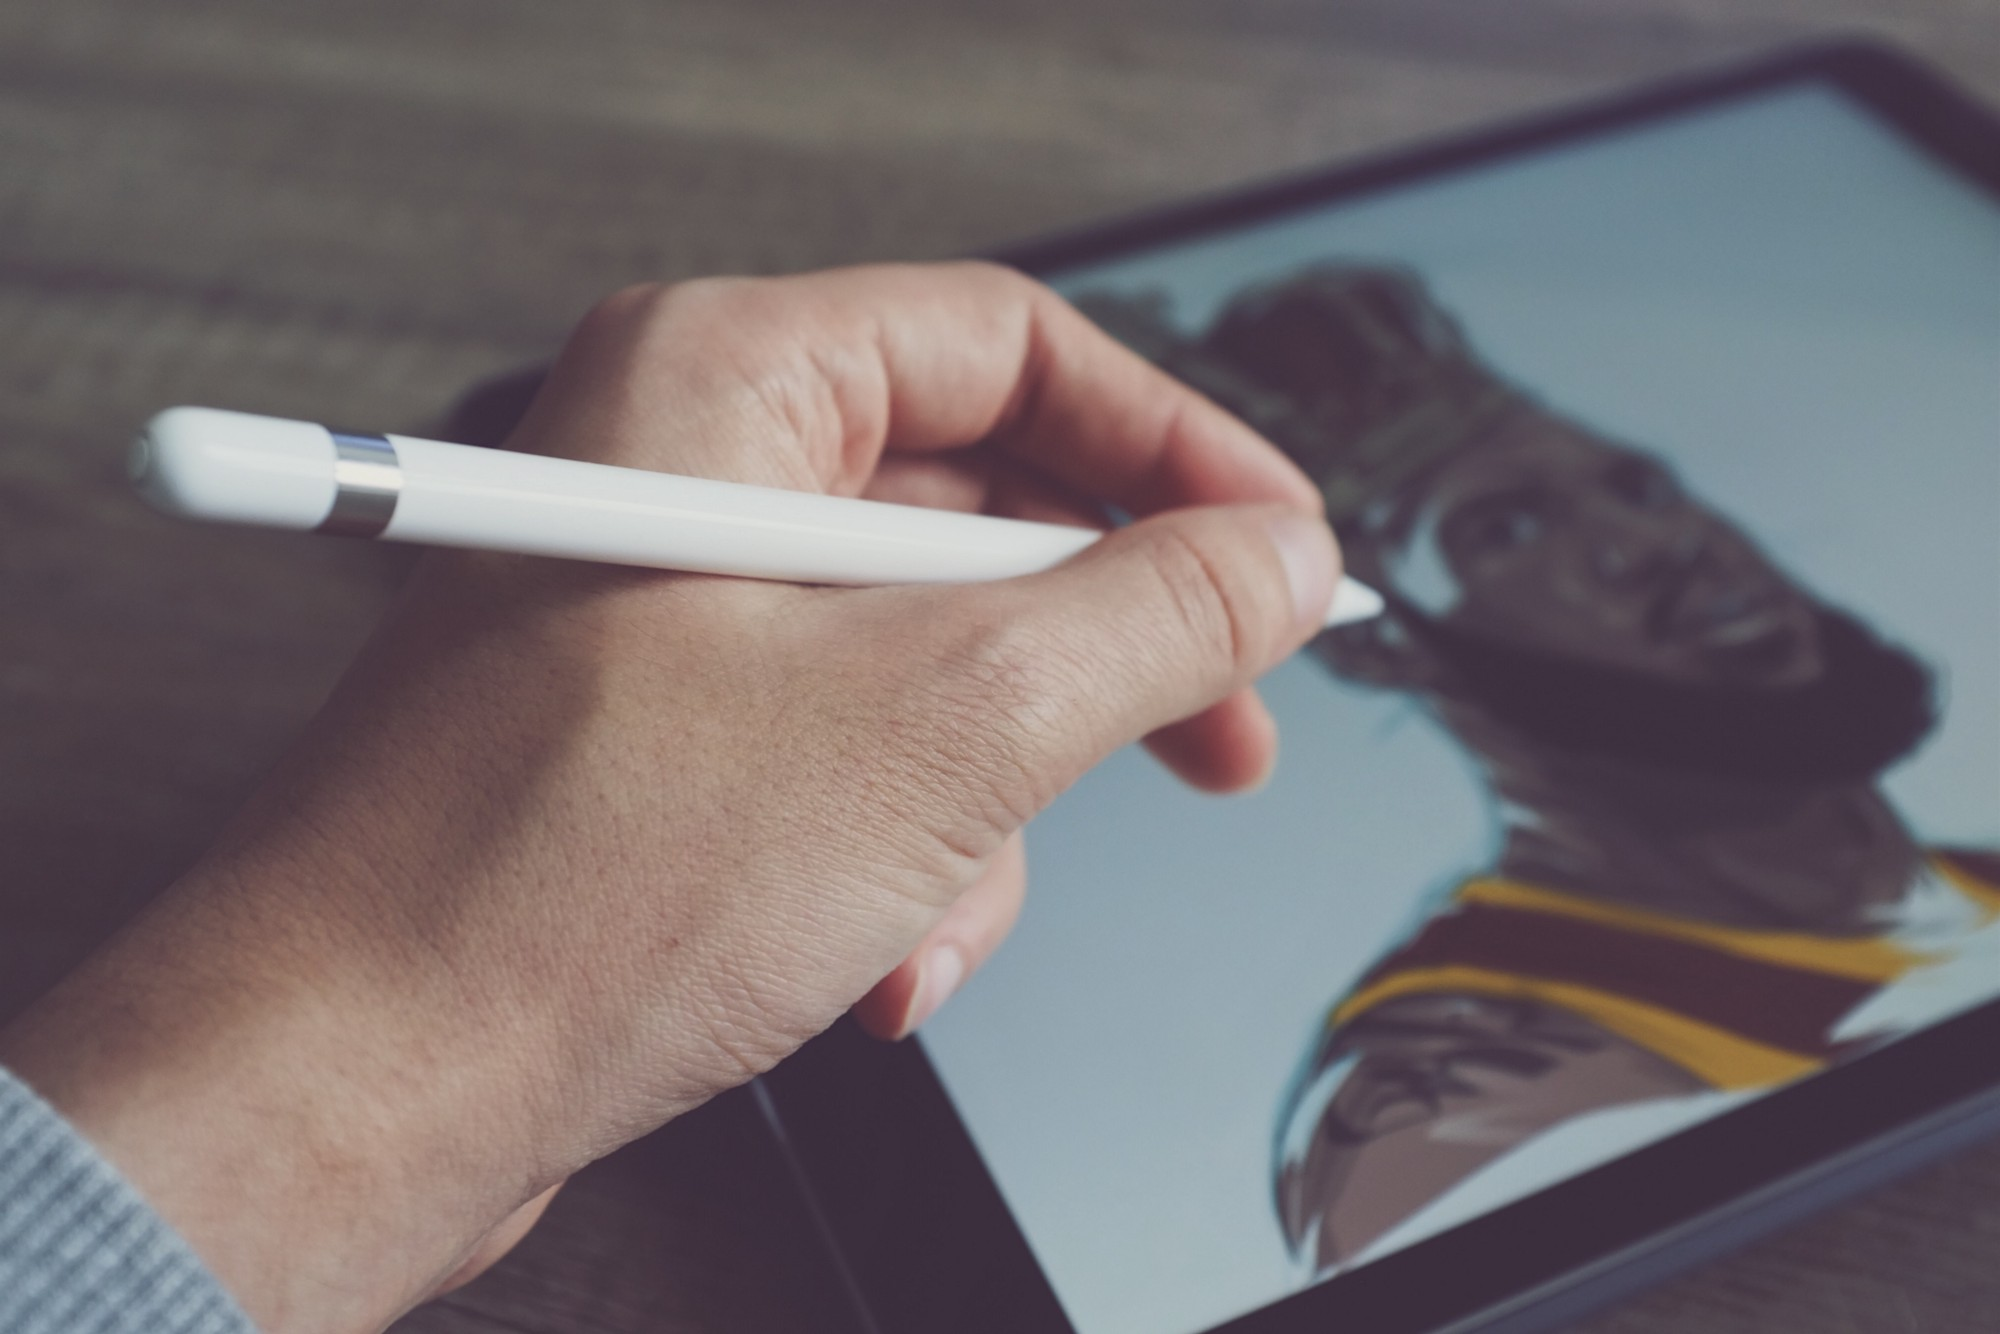 someone using an apple pencil with an ipad, drawing an illustration of a man